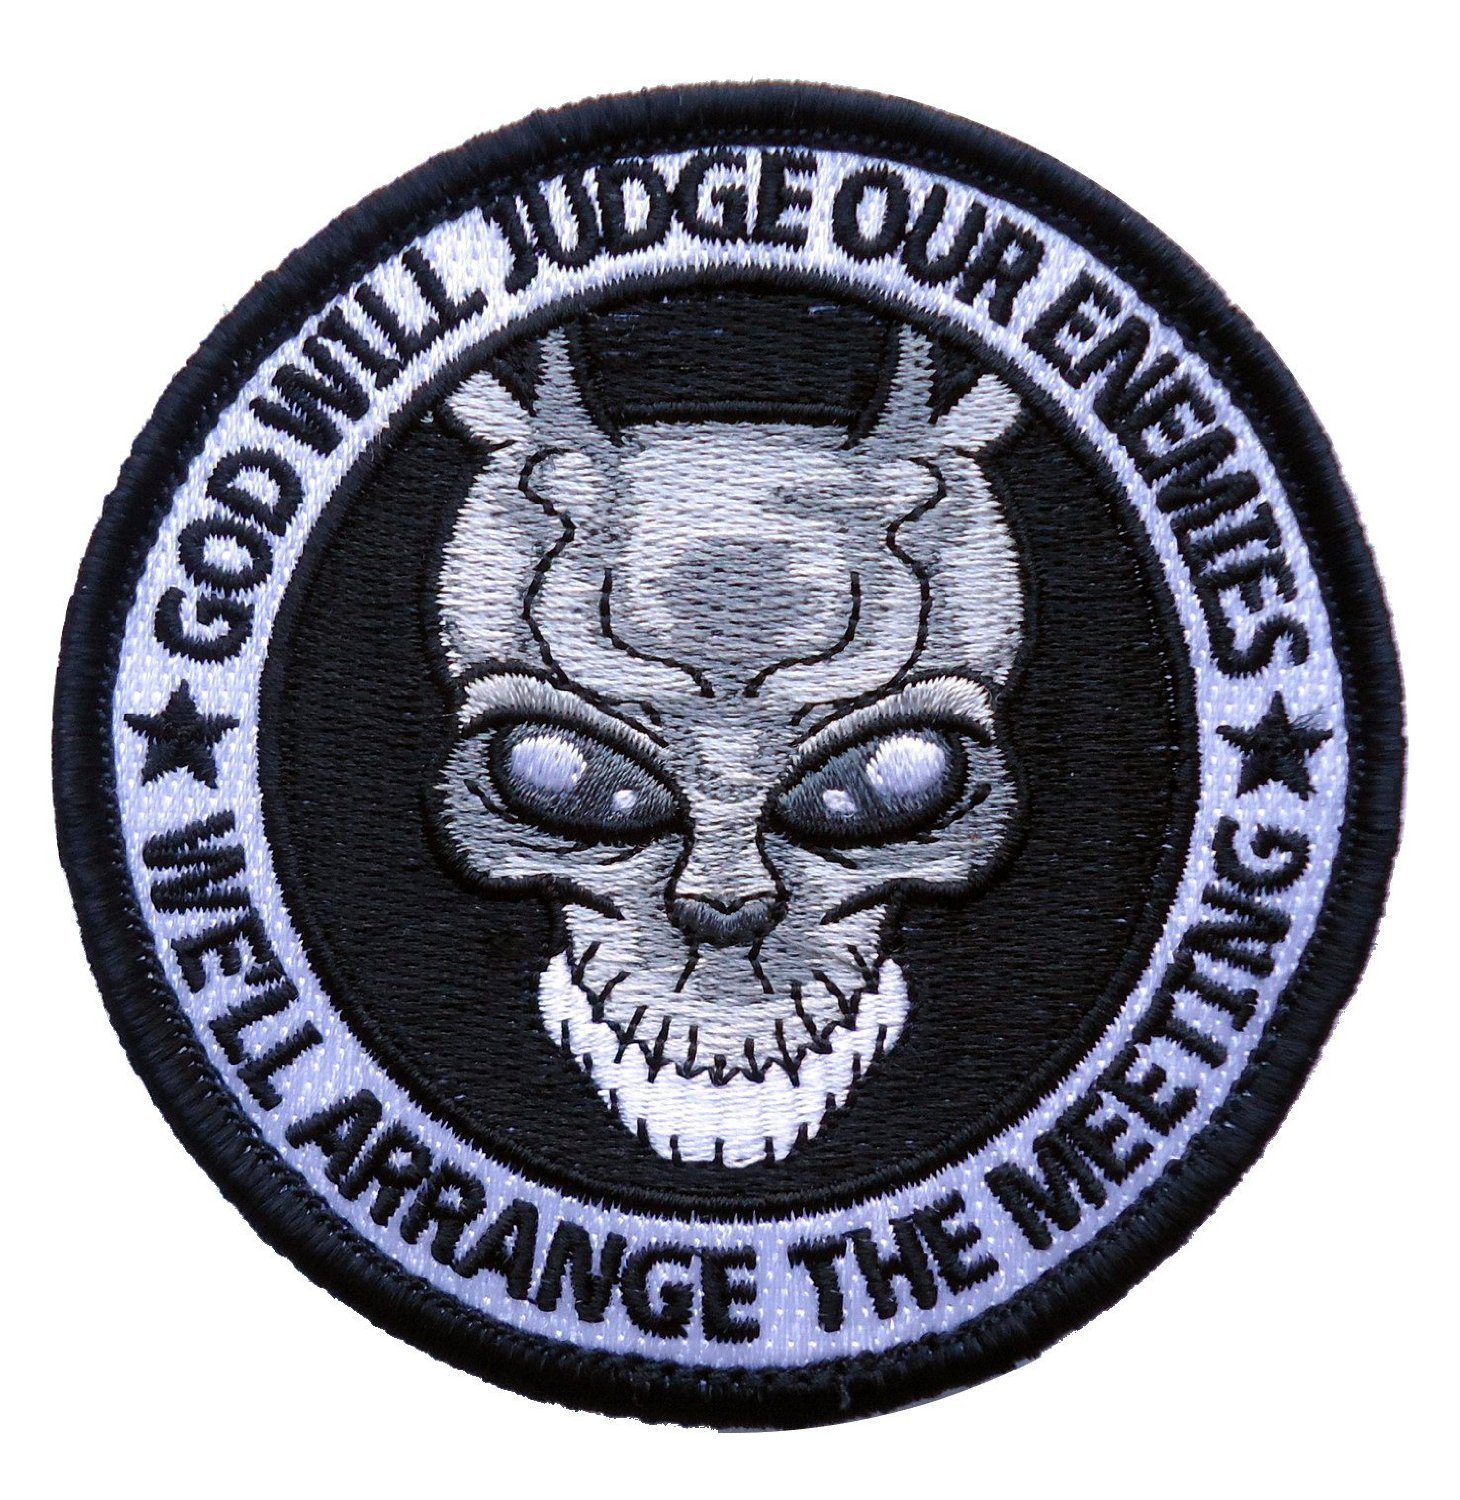 Hook Fastener Special Forces Punisher Donnie Darko Alien Frank Spoof ODA Navy Patch Taktish Klettband Aufn/äher Von Titan One Europe